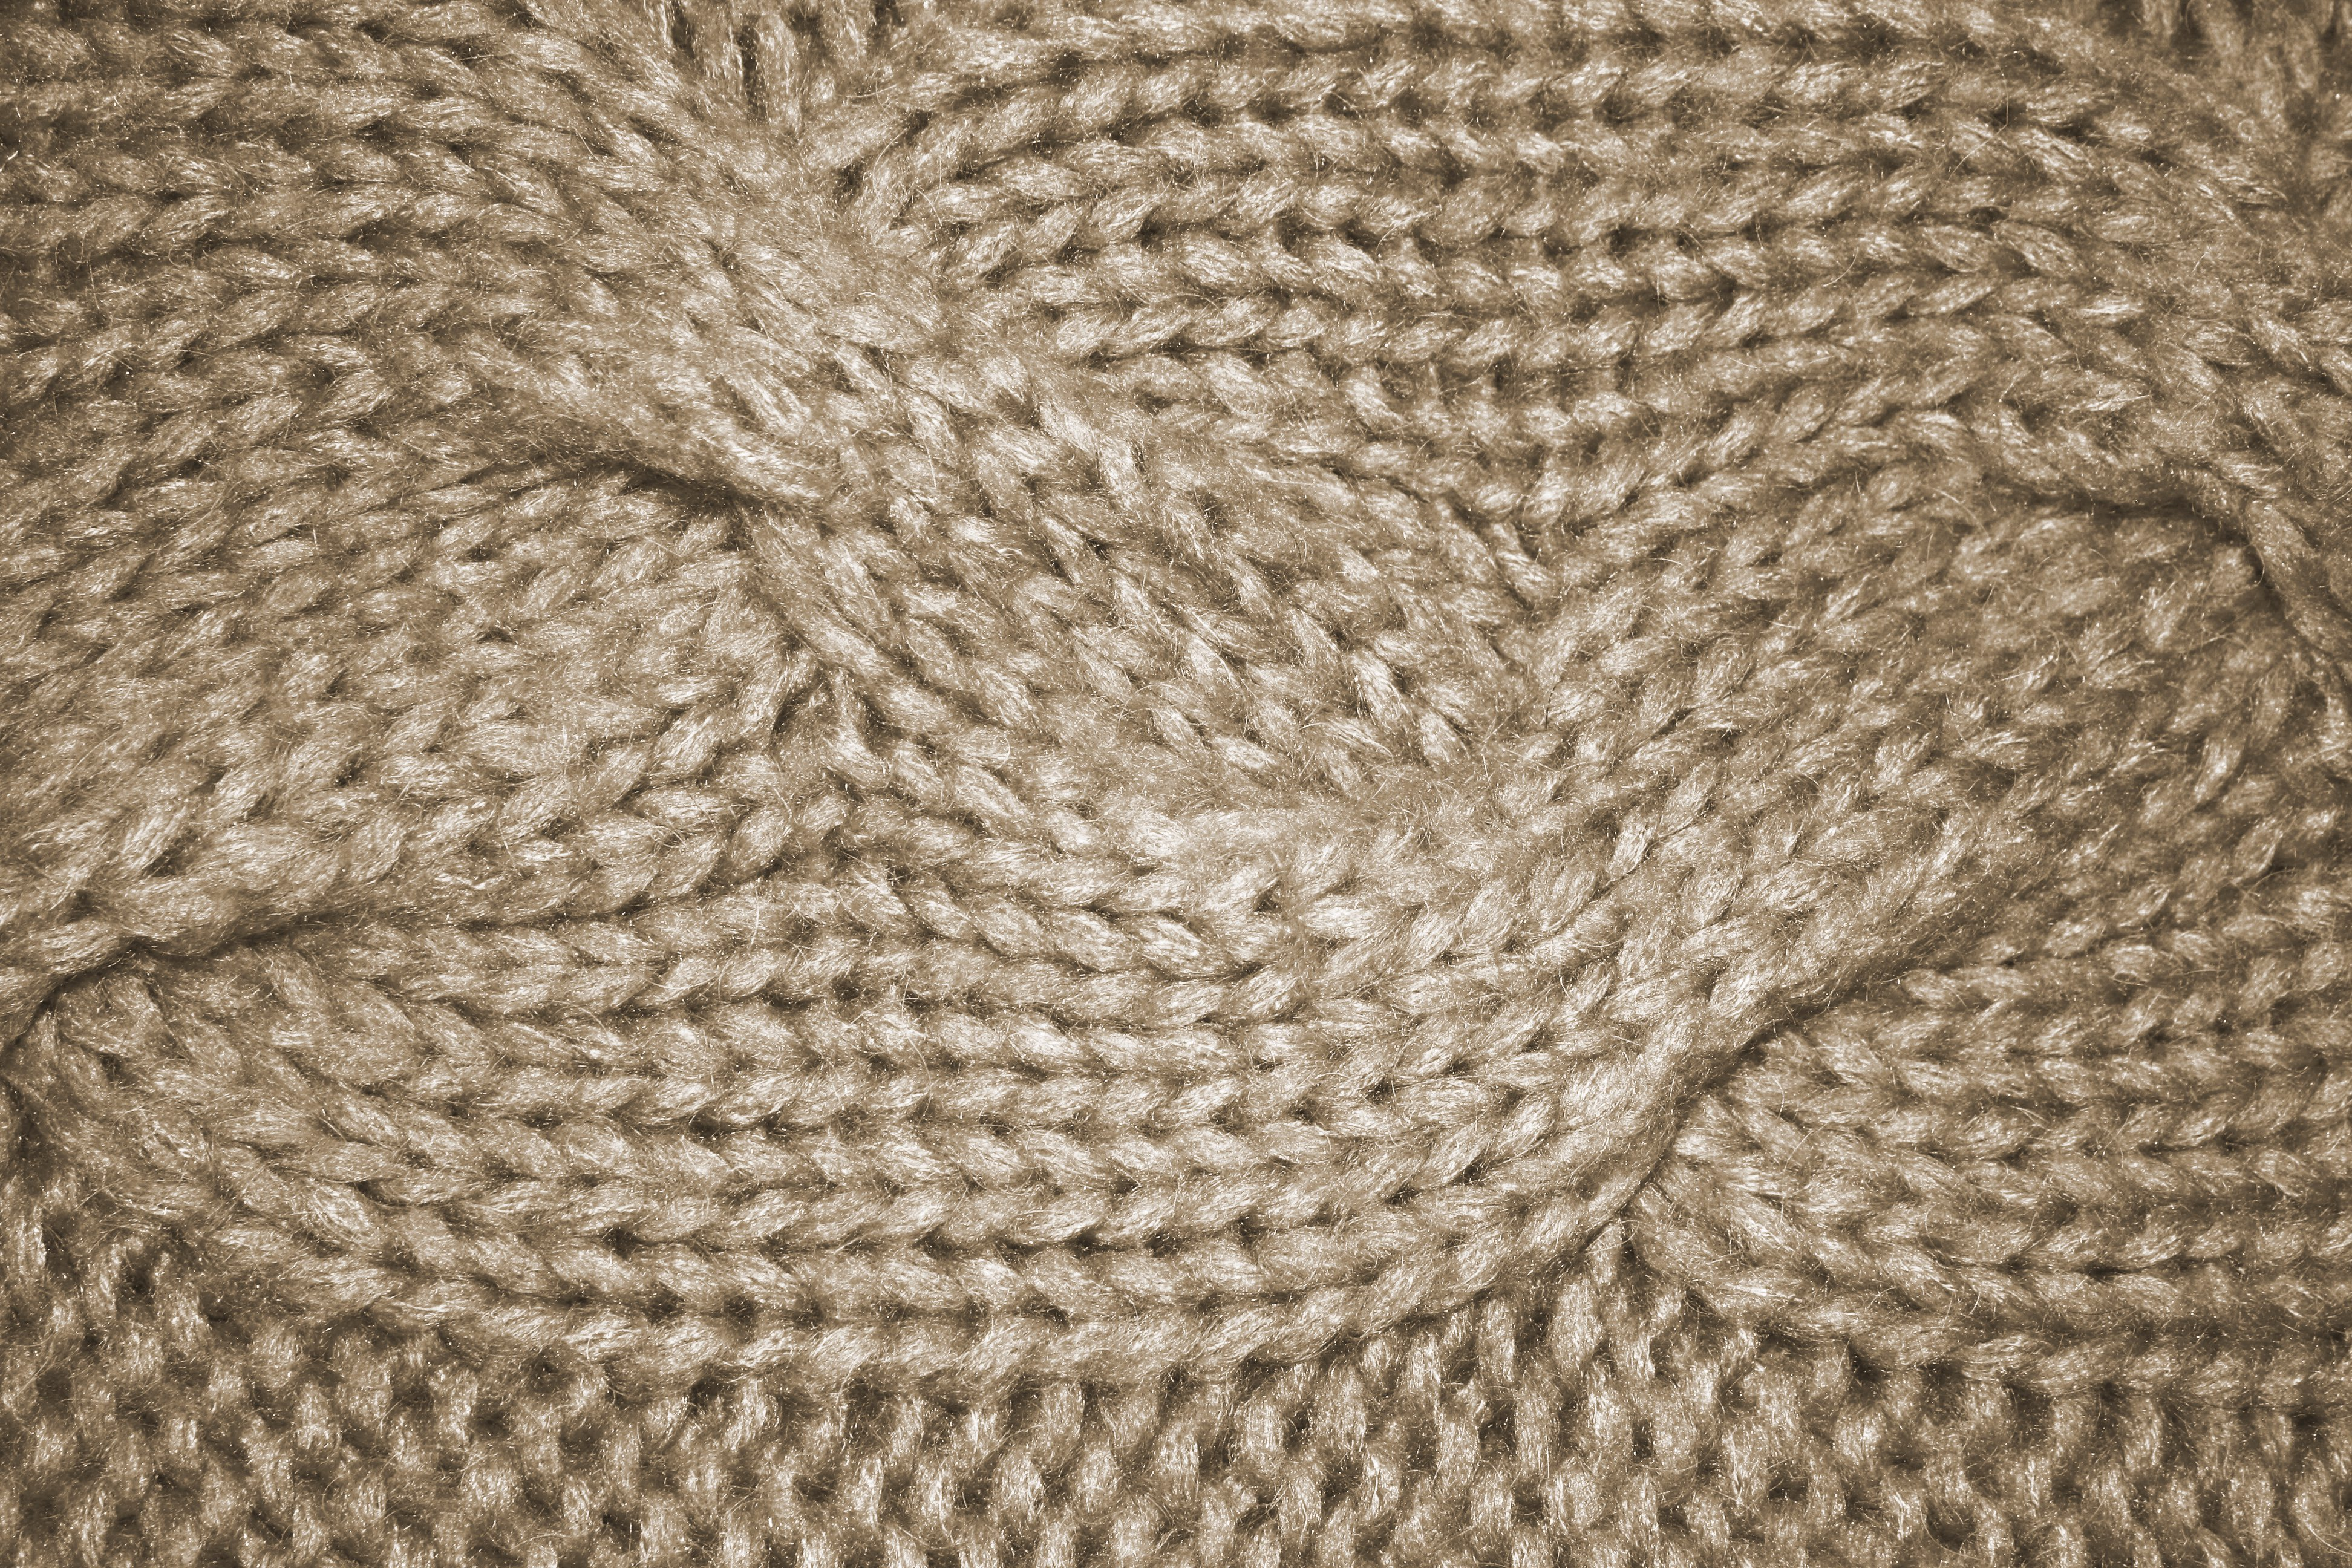 How To Knit A Cable Pattern : Beige Cable Knit Pattern Texture Picture Free Photograph Photos Public Do...